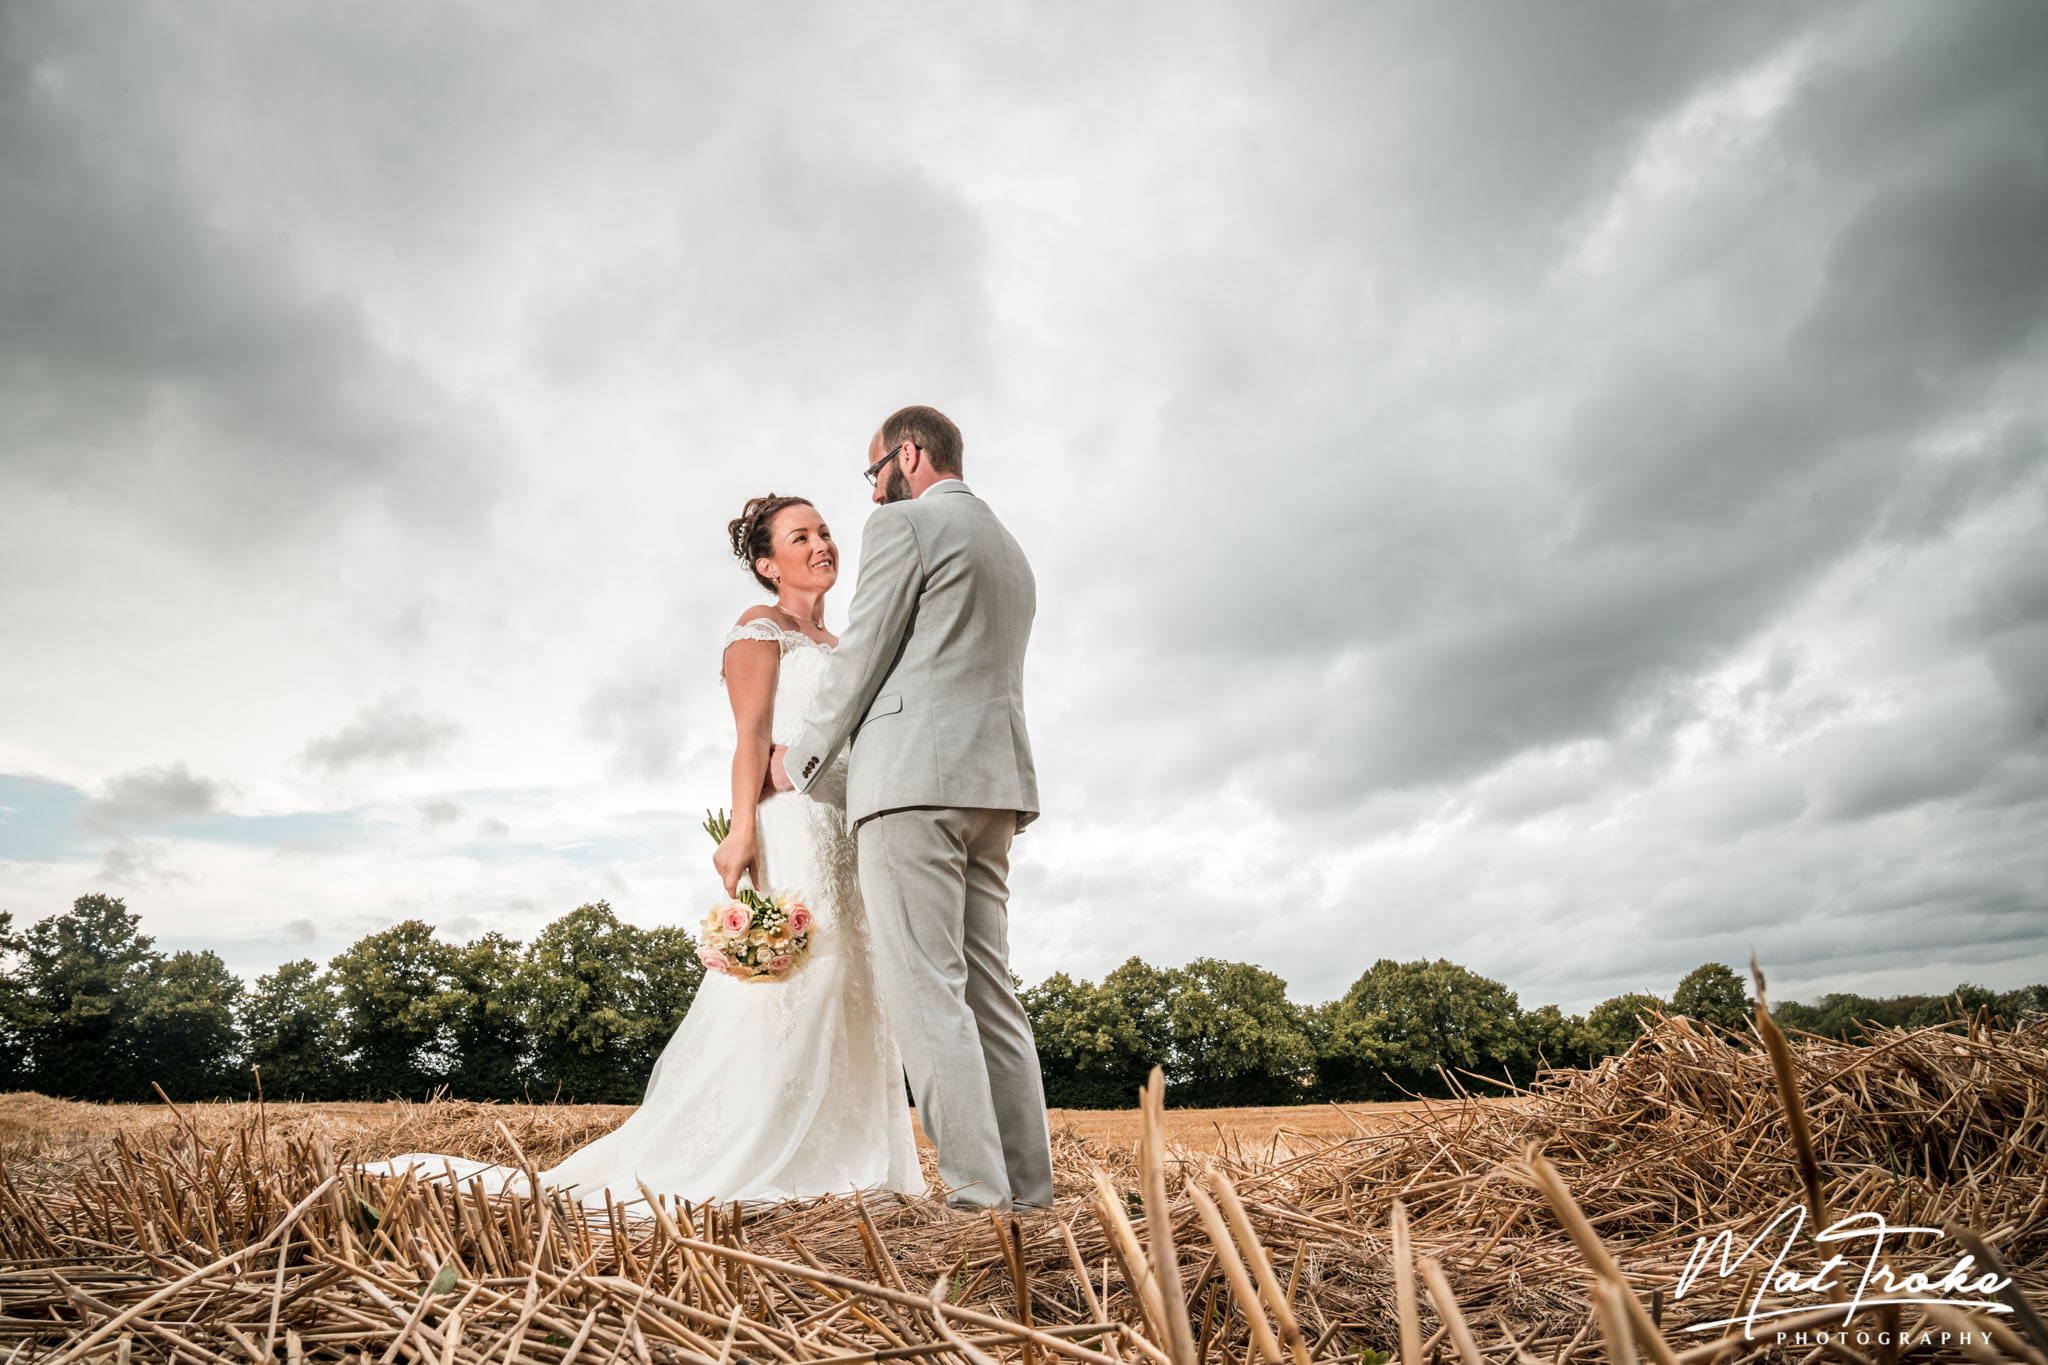 derby_nottingham_wedding_photographer_find_photography_derbyshire_nottinghamshire_bride_groom